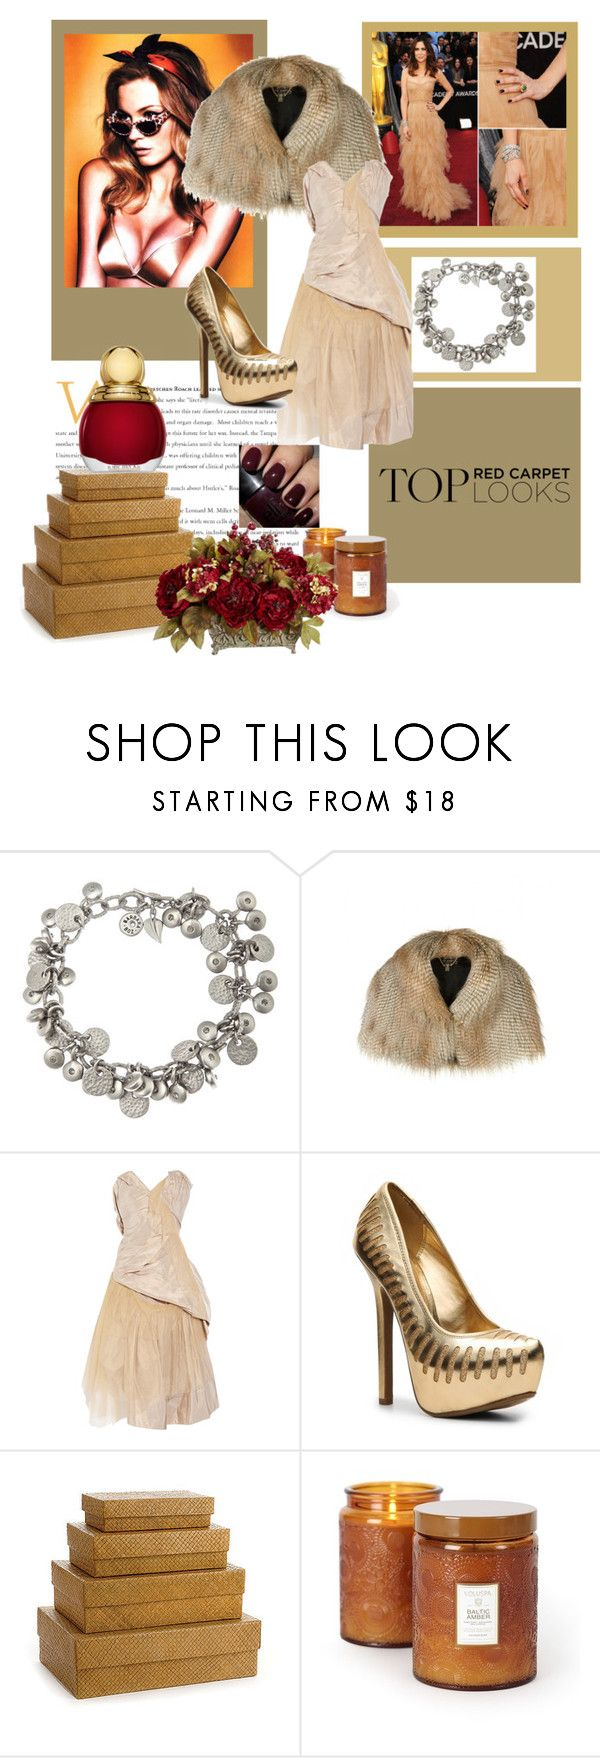 """""""Energize Your Own Red Carpet Style"""" by cigoehring ❤ liked on Polyvore featuring Style Naturale, Ted Baker, Vivienne Westwood Gold Label, Anne Michelle, Voluspa, spiked heels, red velvet nail polish, cropped shrug, satin bra and taffeta"""